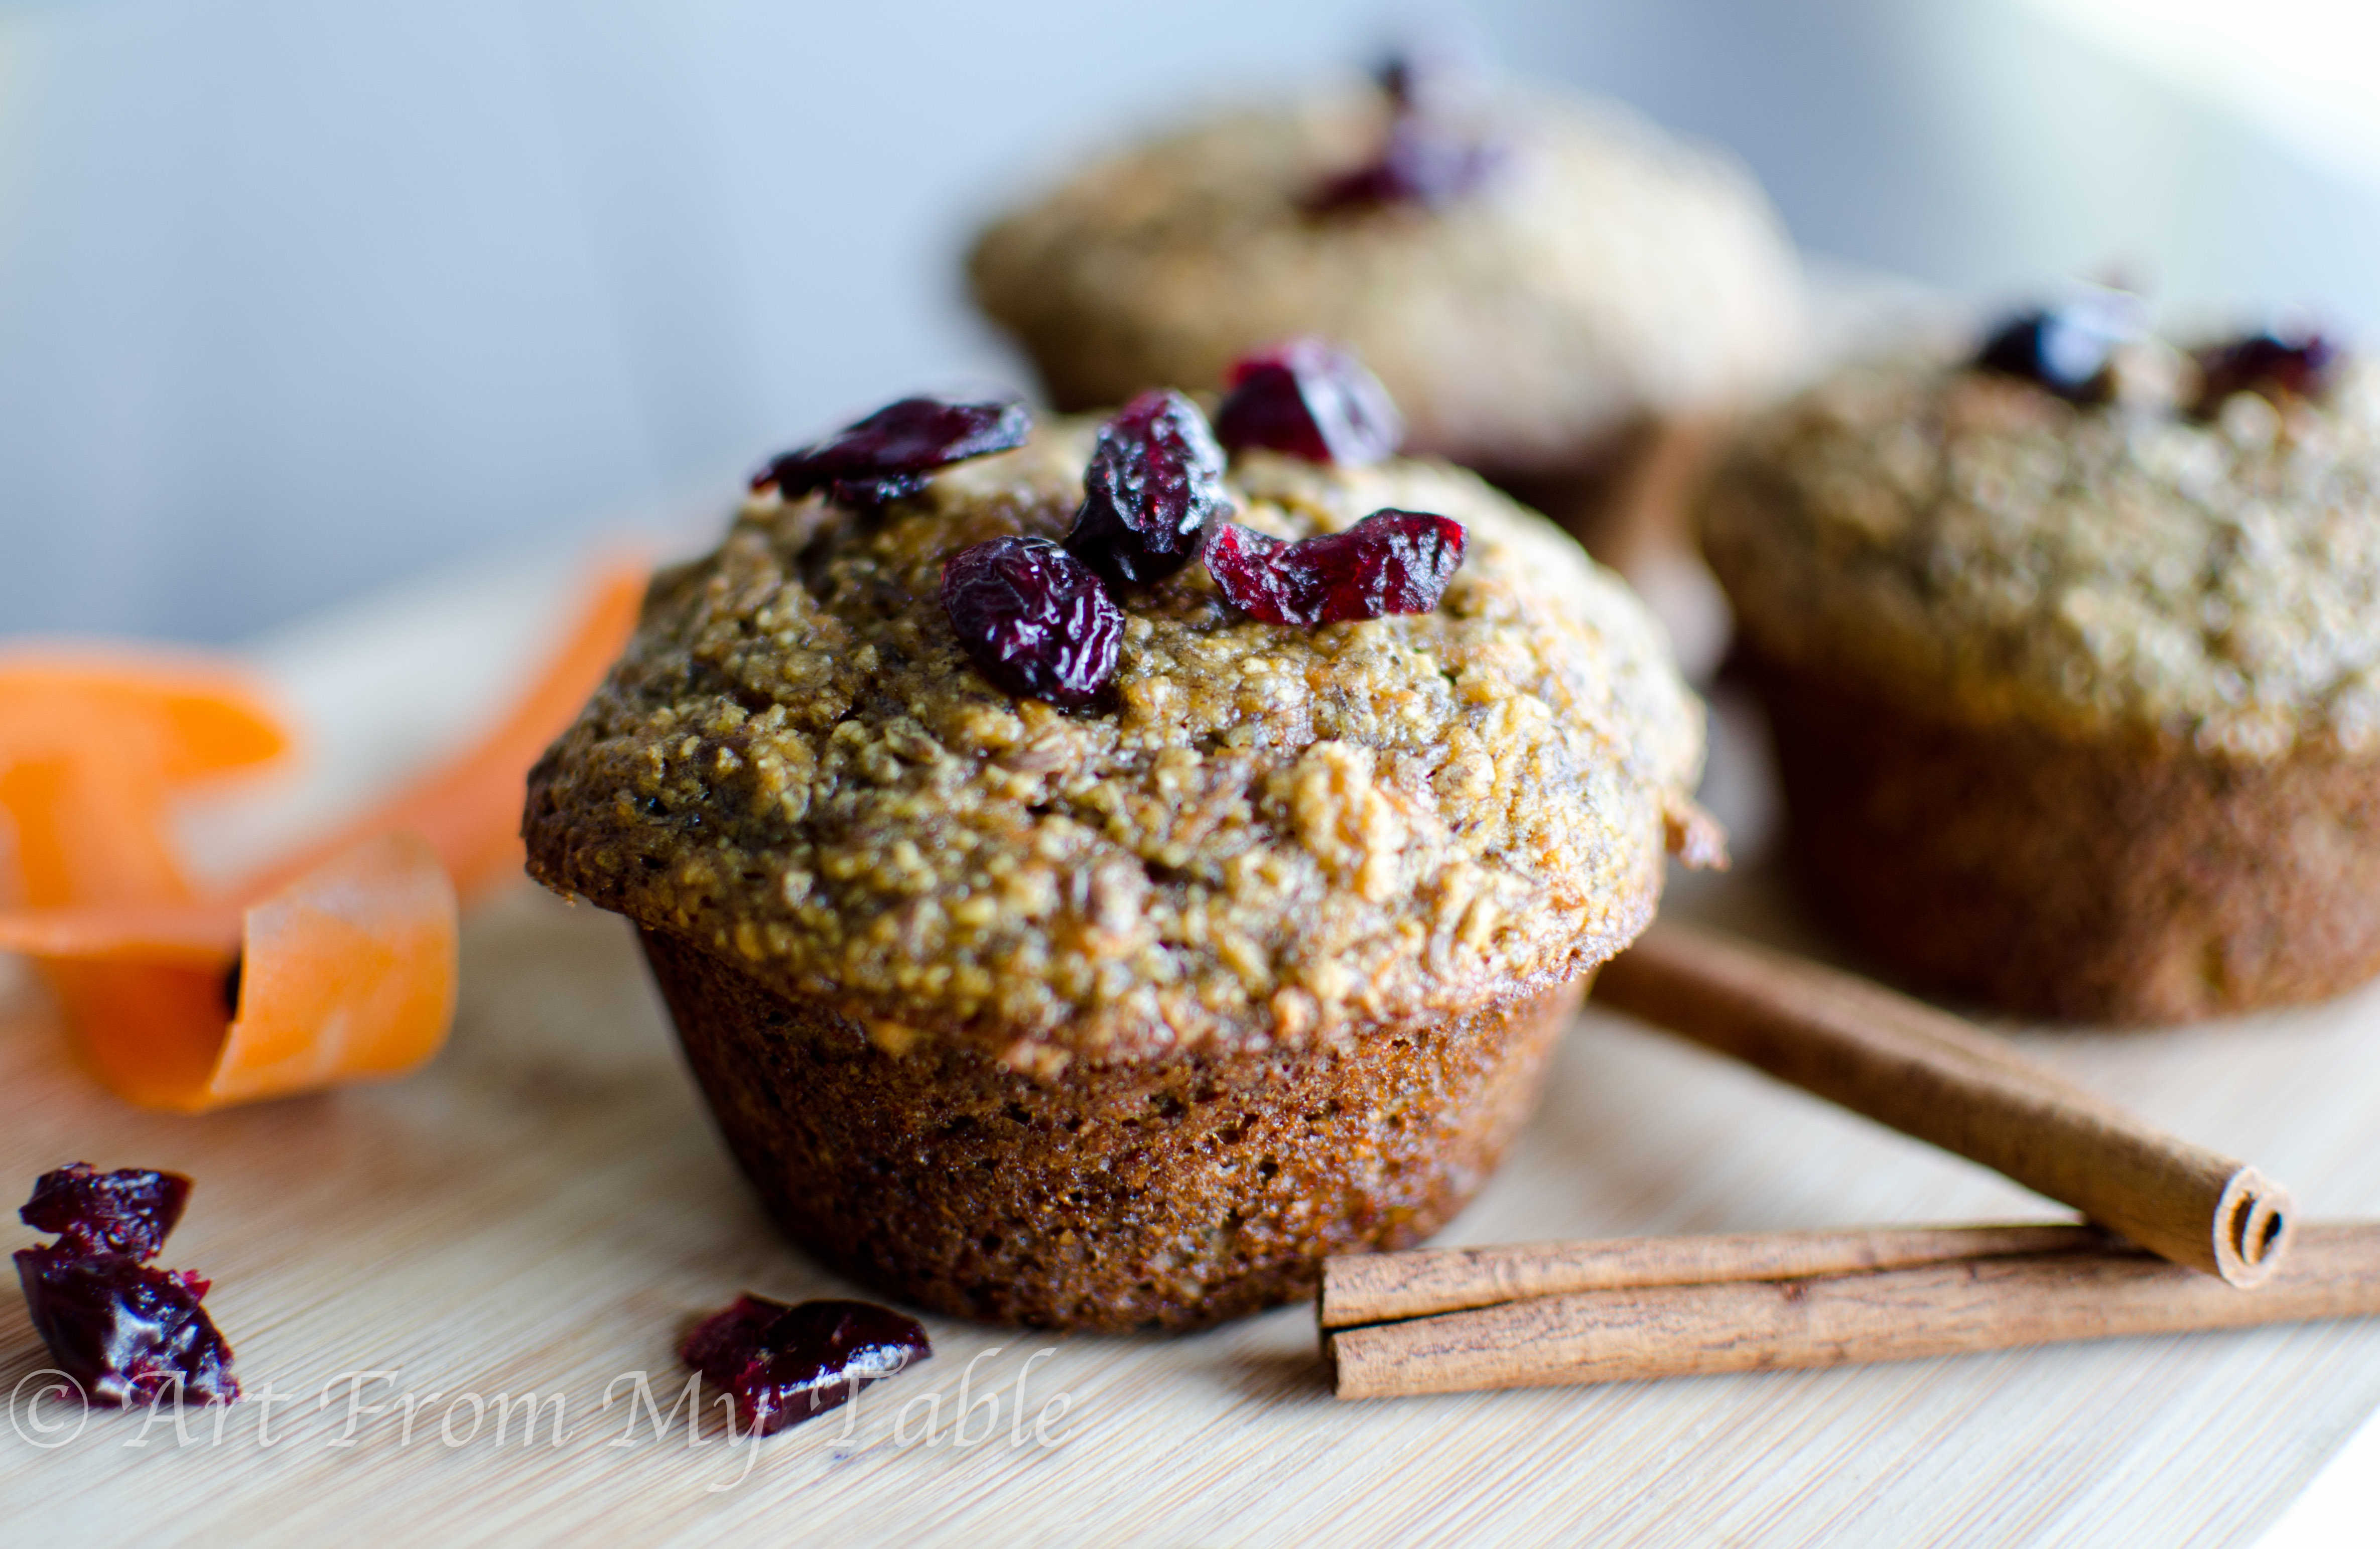 Bran flax muffins with a couple of cinnamon sticks and craisins next to it.